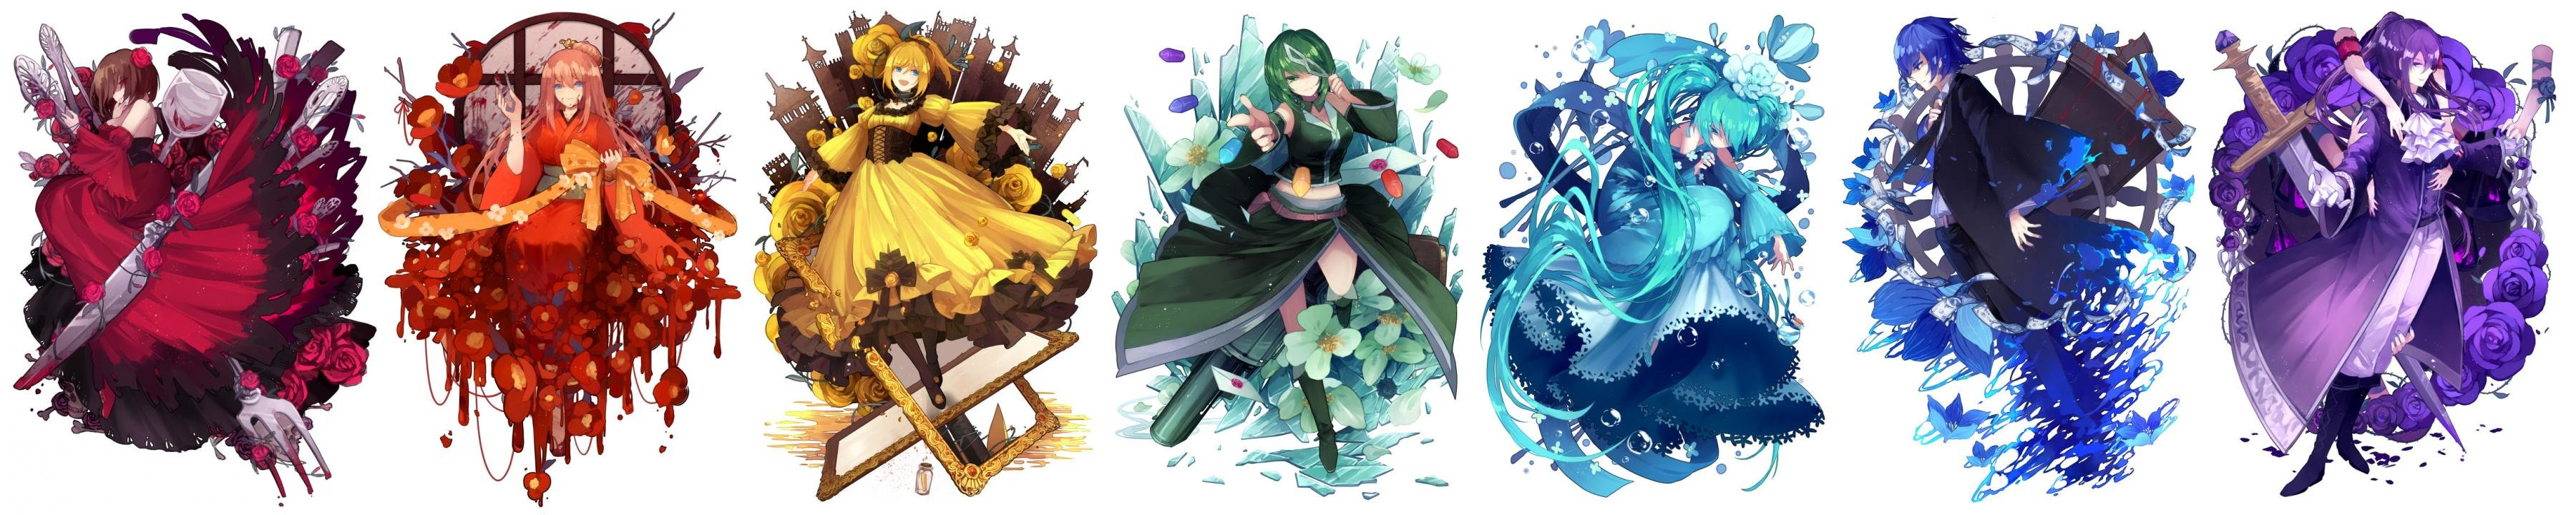 Download triple monitor 3600x720 Vocaloid desktop wallpaper ID:5563 for free